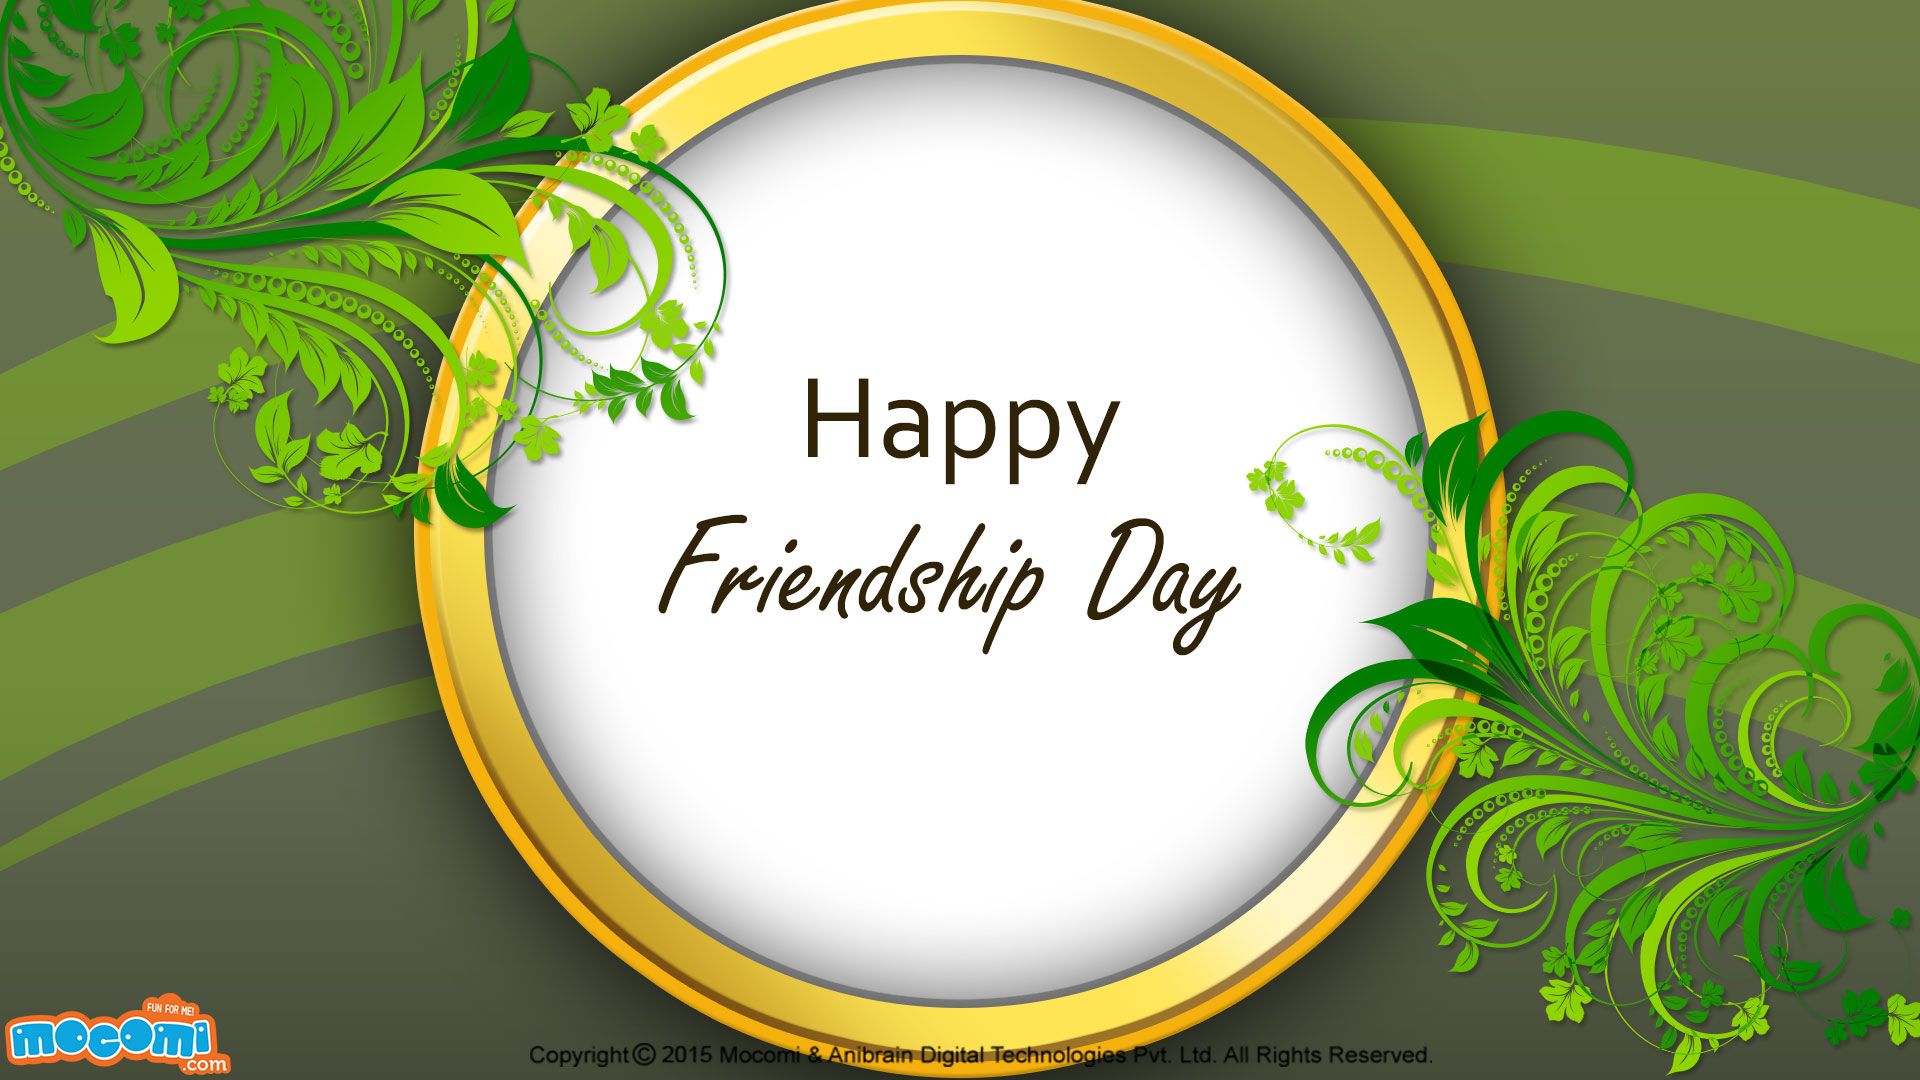 Happy Friendship Day Wallpapers For Desktop Get Quotes Wishes